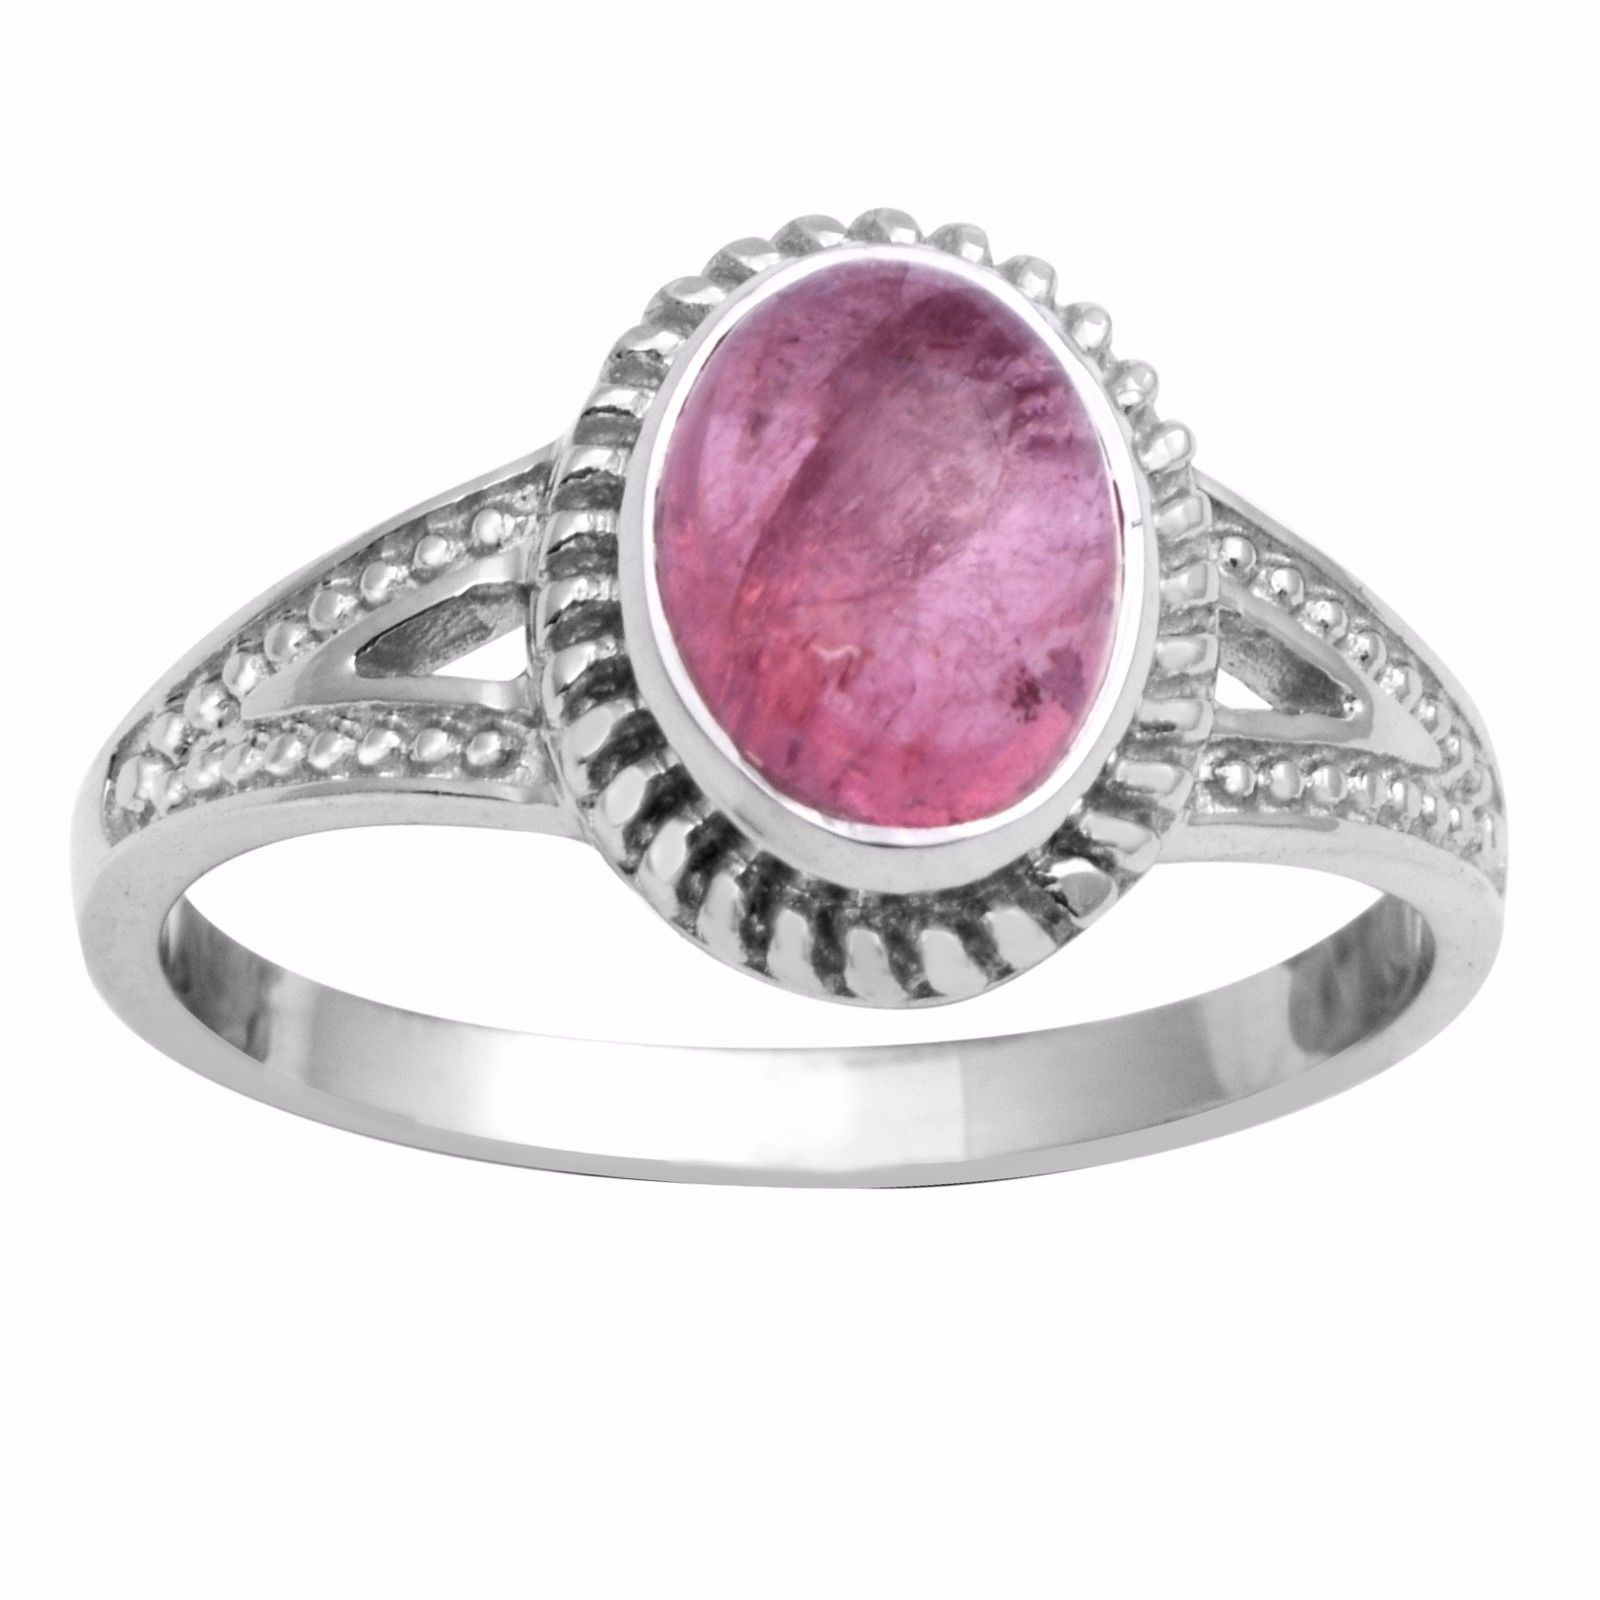 Designer Solid 925 Sterling Silver Pink Tourmaline Jewelry Ring Sz 7.5 SHRI0742